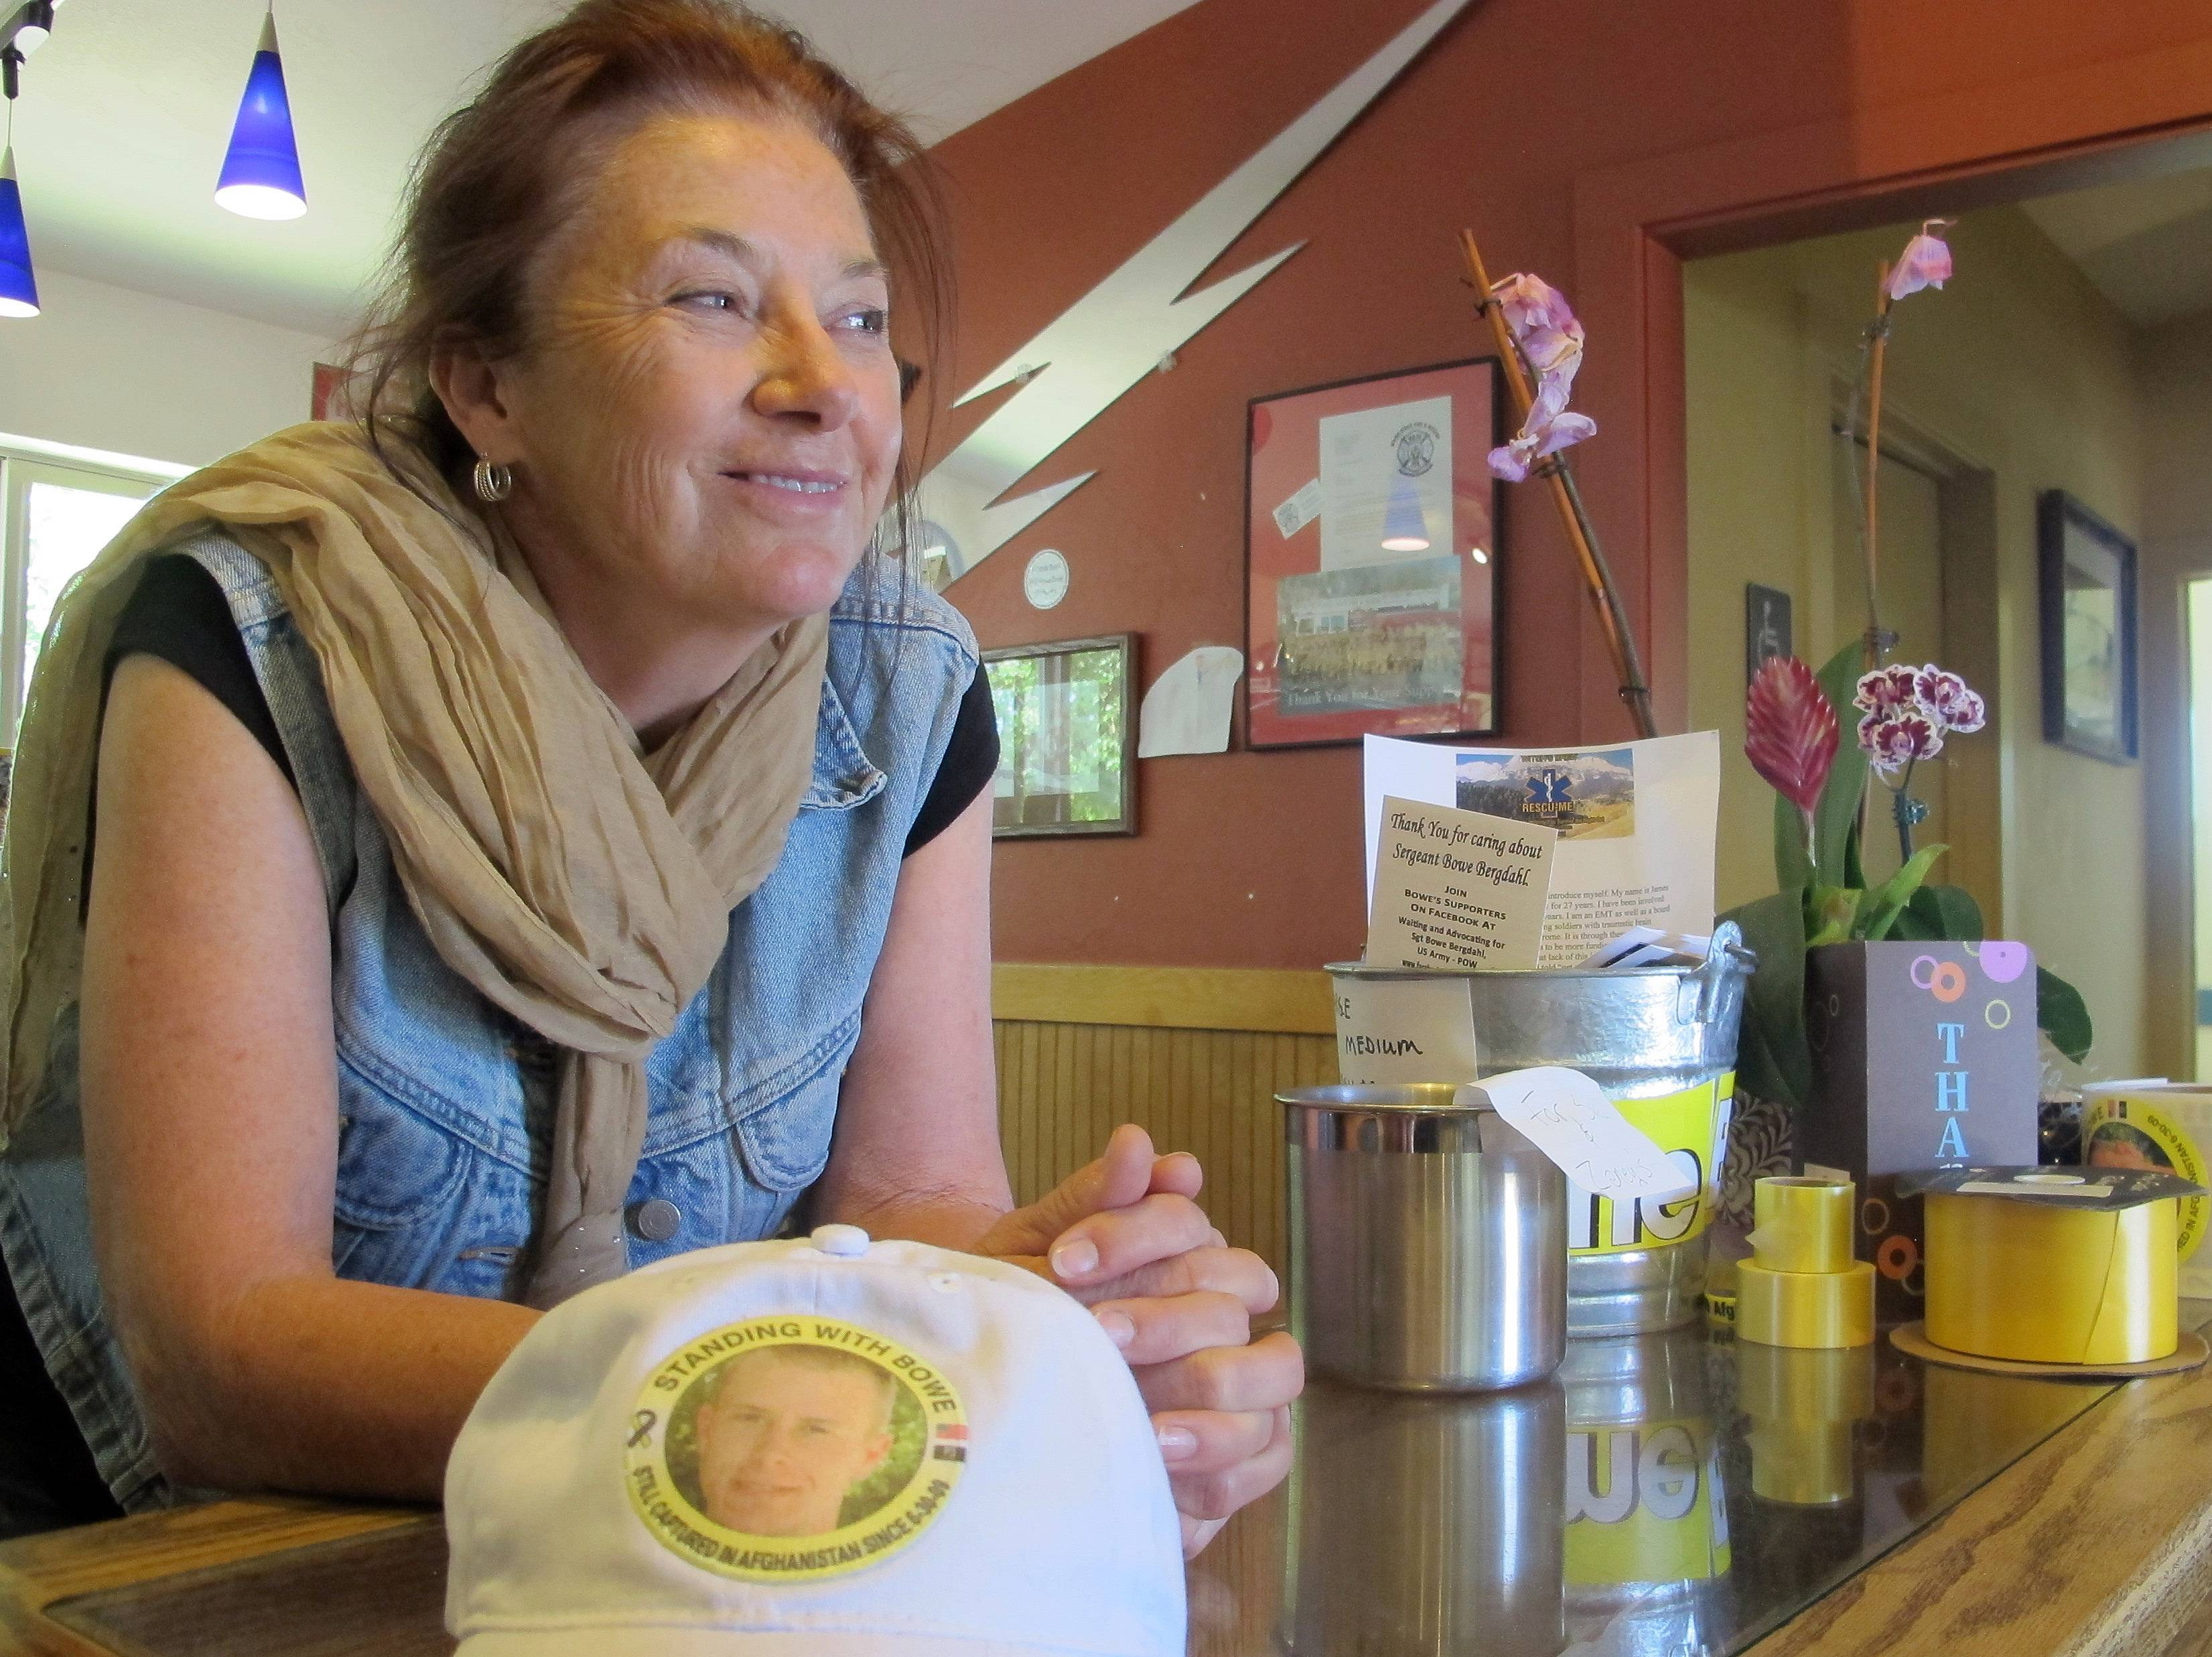 Sue Martin, a Bergdahl family friend and owner of Zaney's Coffee Shop in downtown Hailey, Idaho, leans on the counter in her shop watching the crowd of media on the street outside Thursday, June 5, 2014. Martin closed her shop following Bowe Bergdahl's release in a prisoner swap with the Taliban to focus on serving as the family spokesperson.